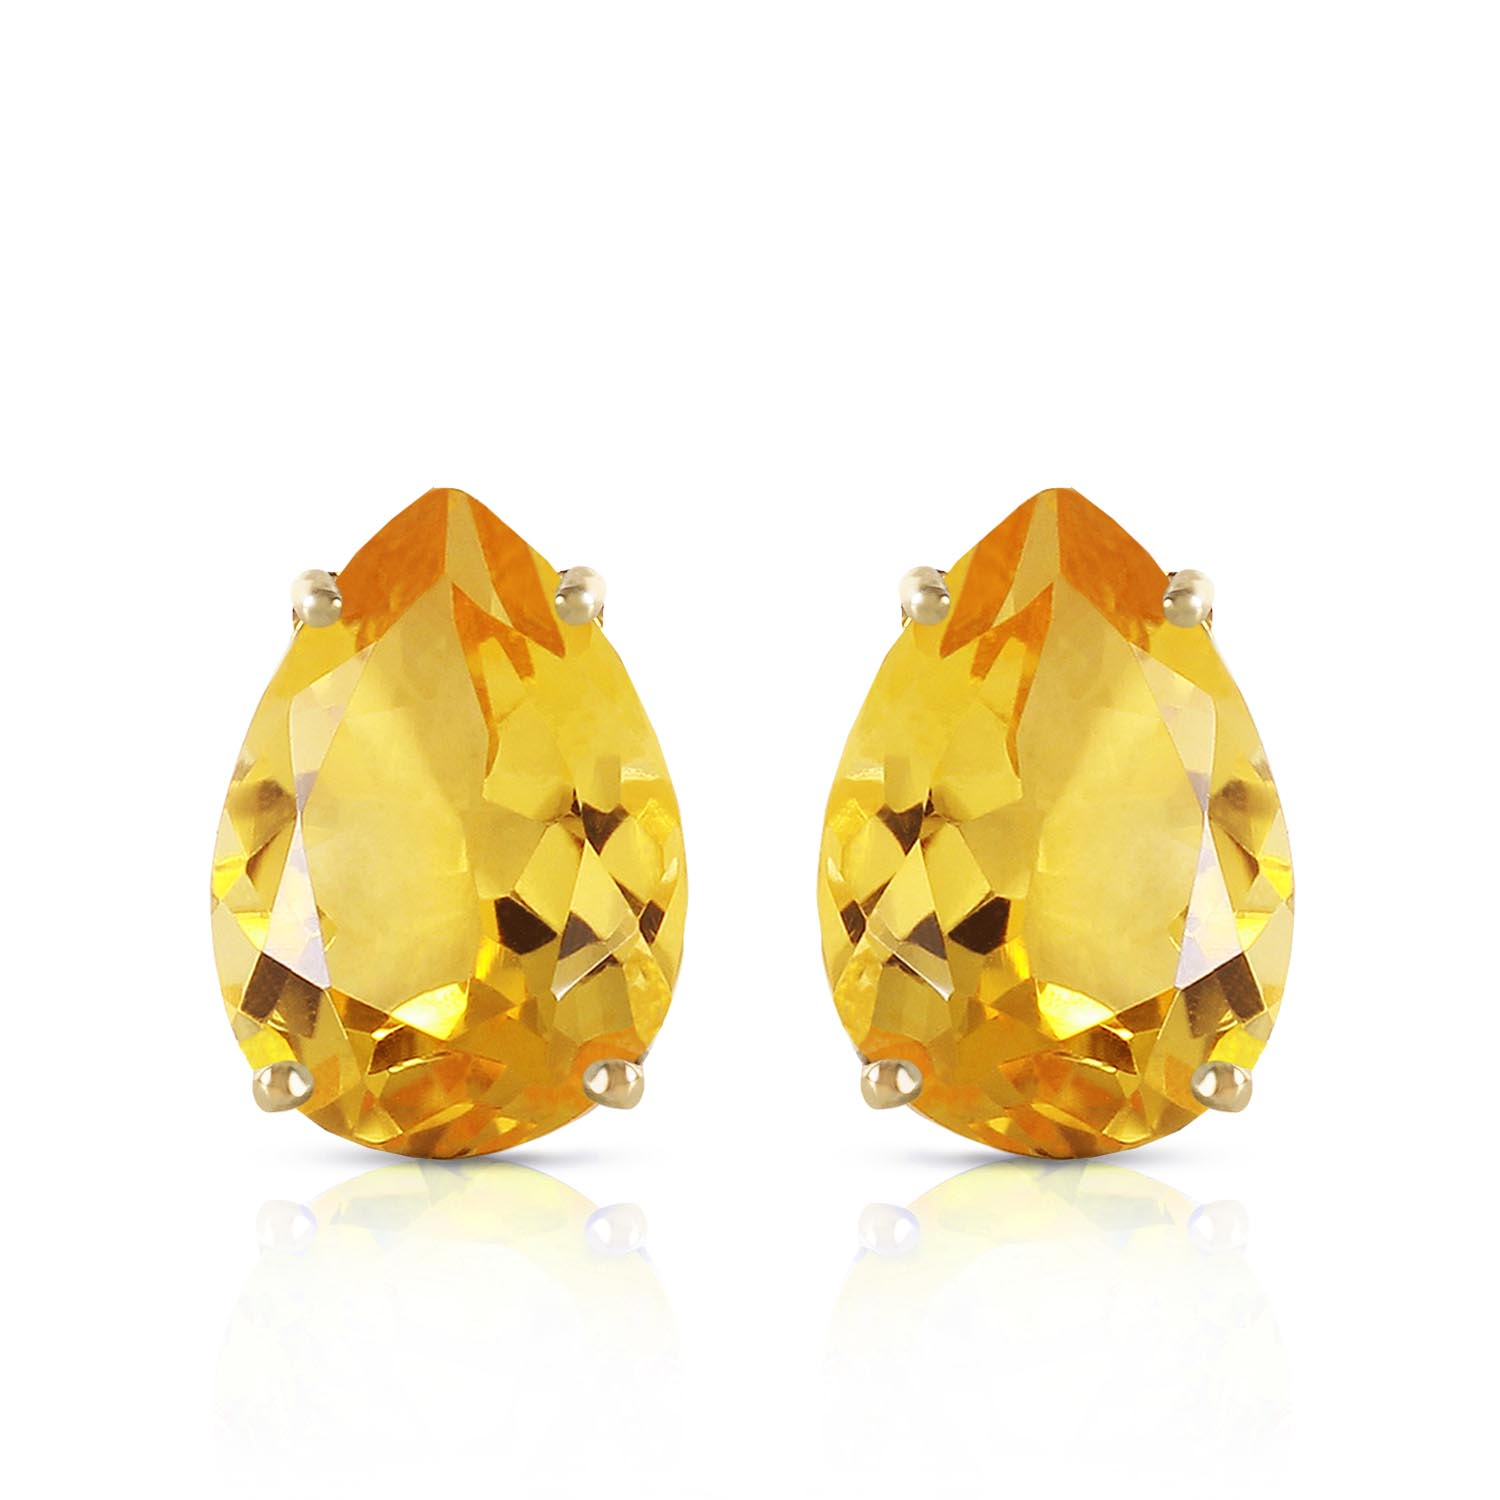 Citrine Droplet Stud Earrings 10.0ctw in 9ct Gold